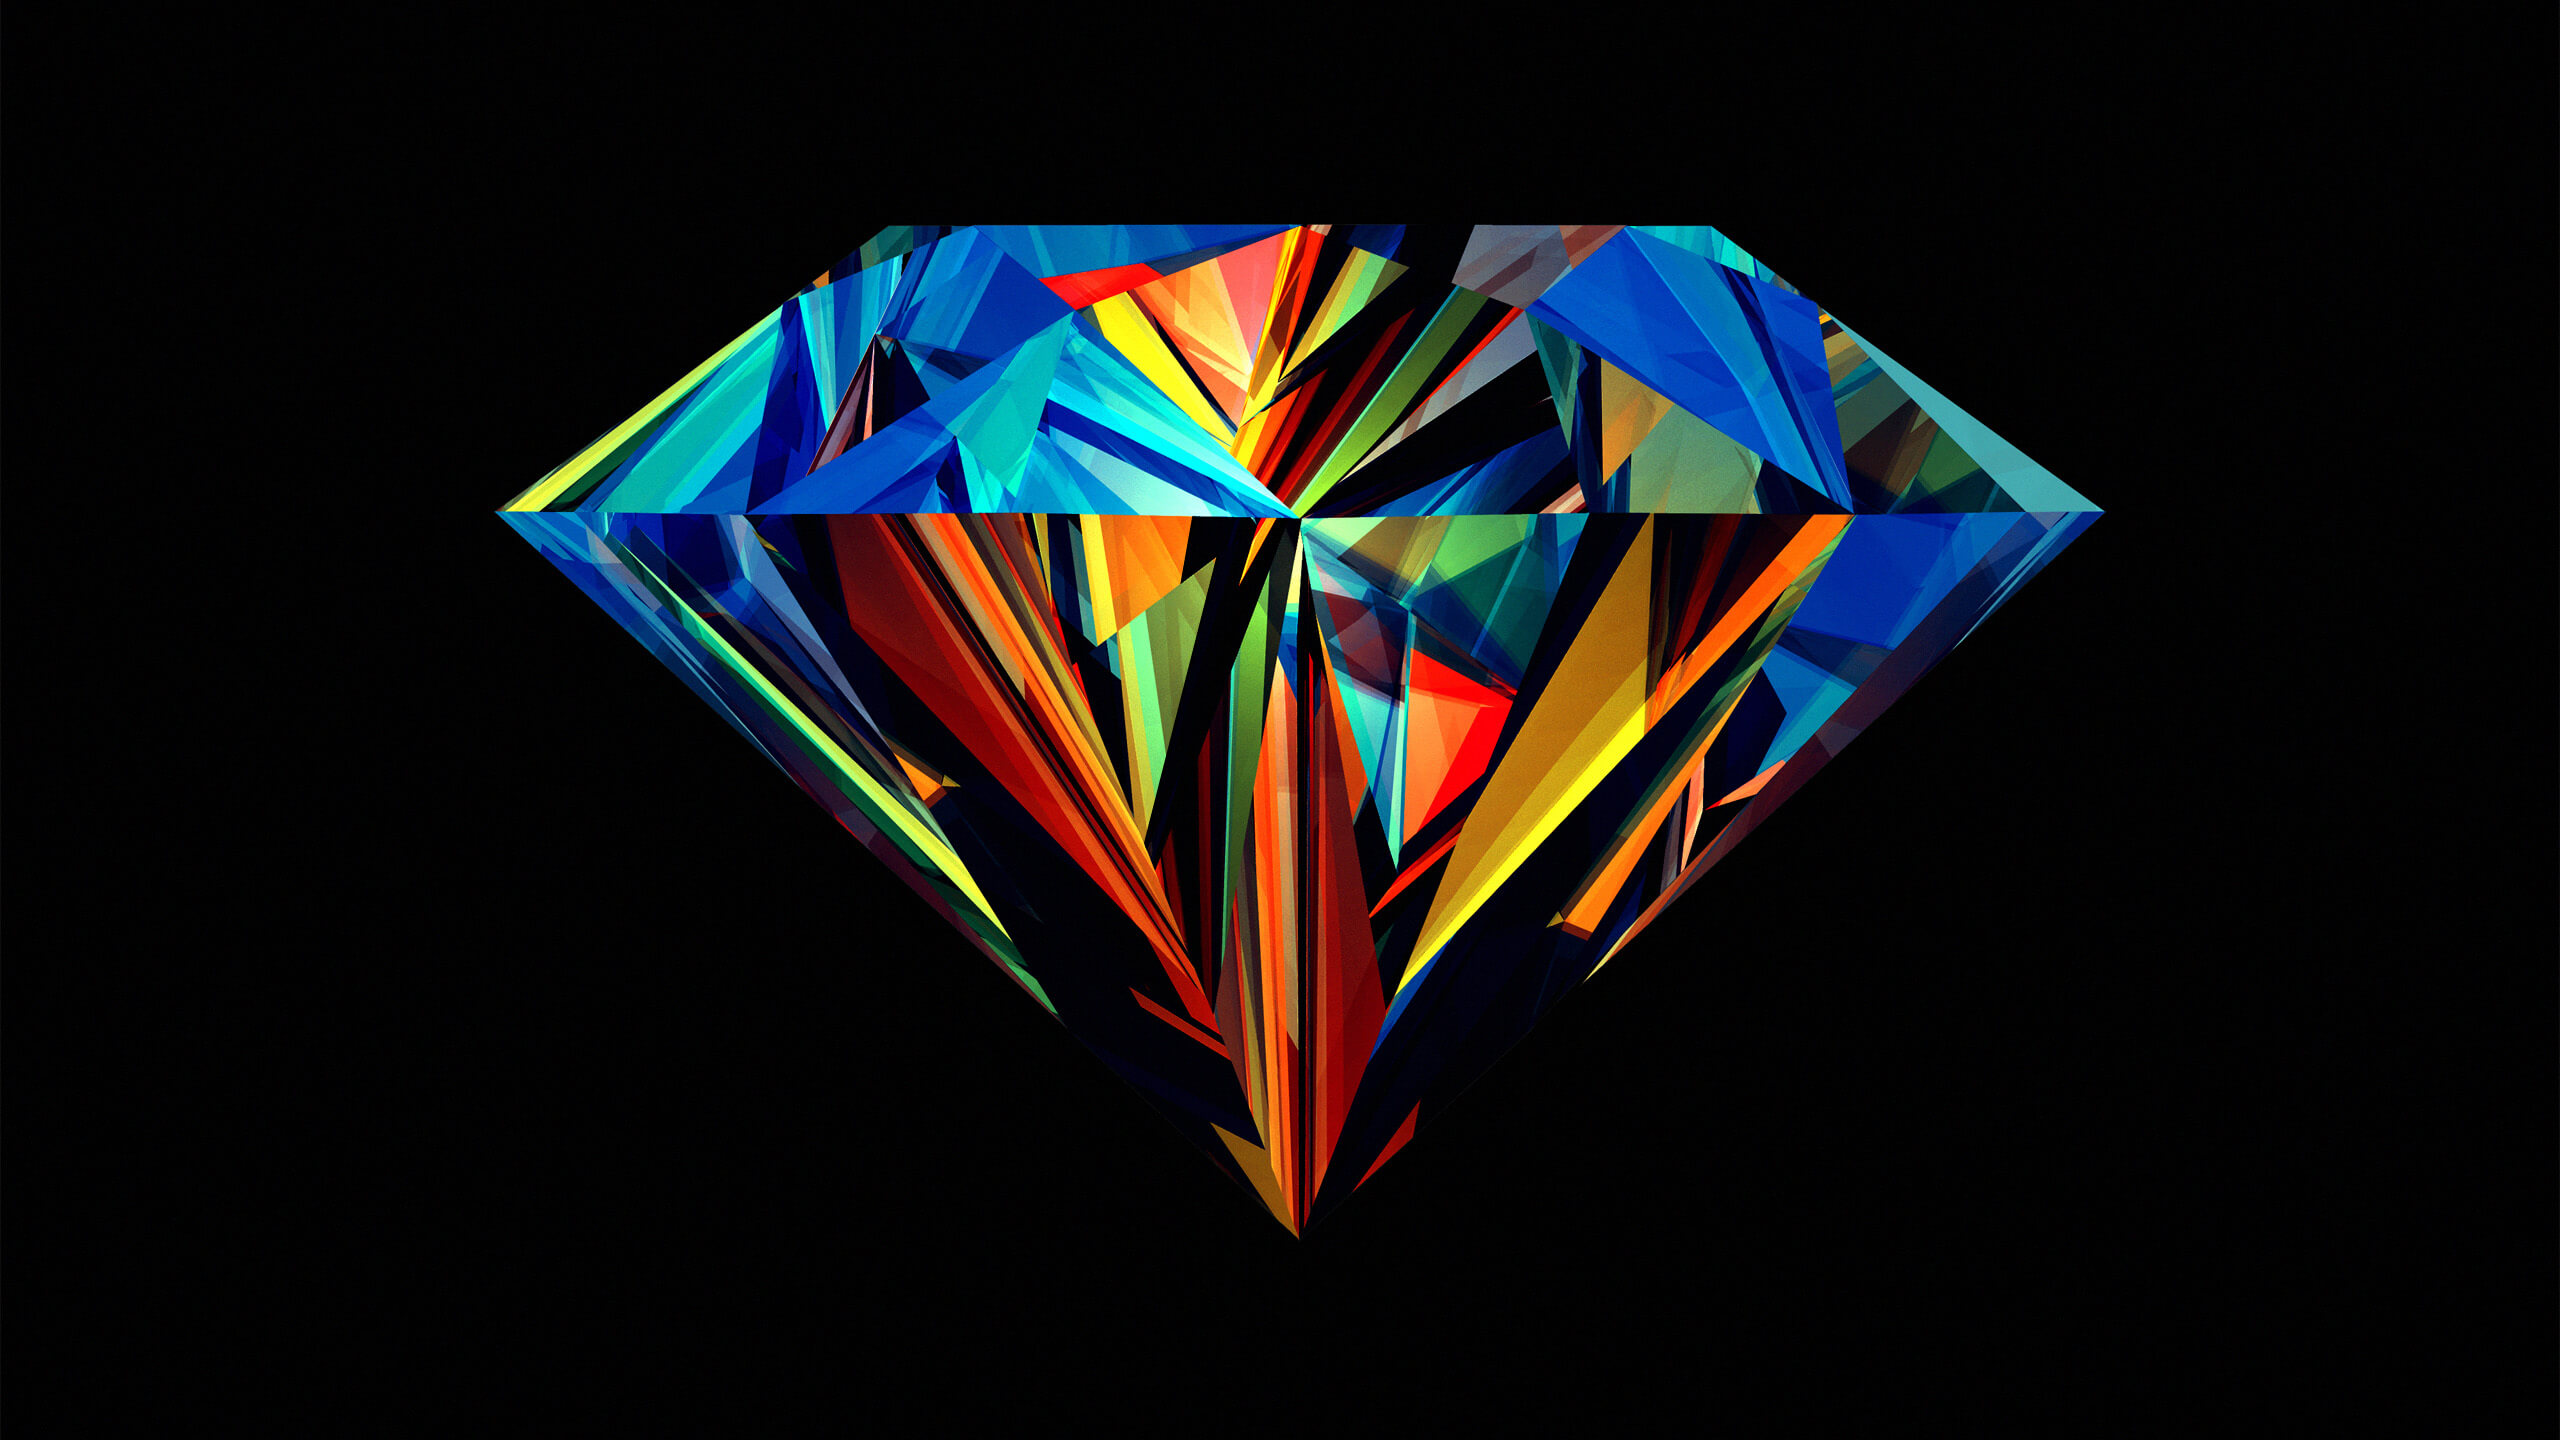 Colorful Diamond HD wallpaper for Youtube Channel Art   HDwallpapers 2560x1440